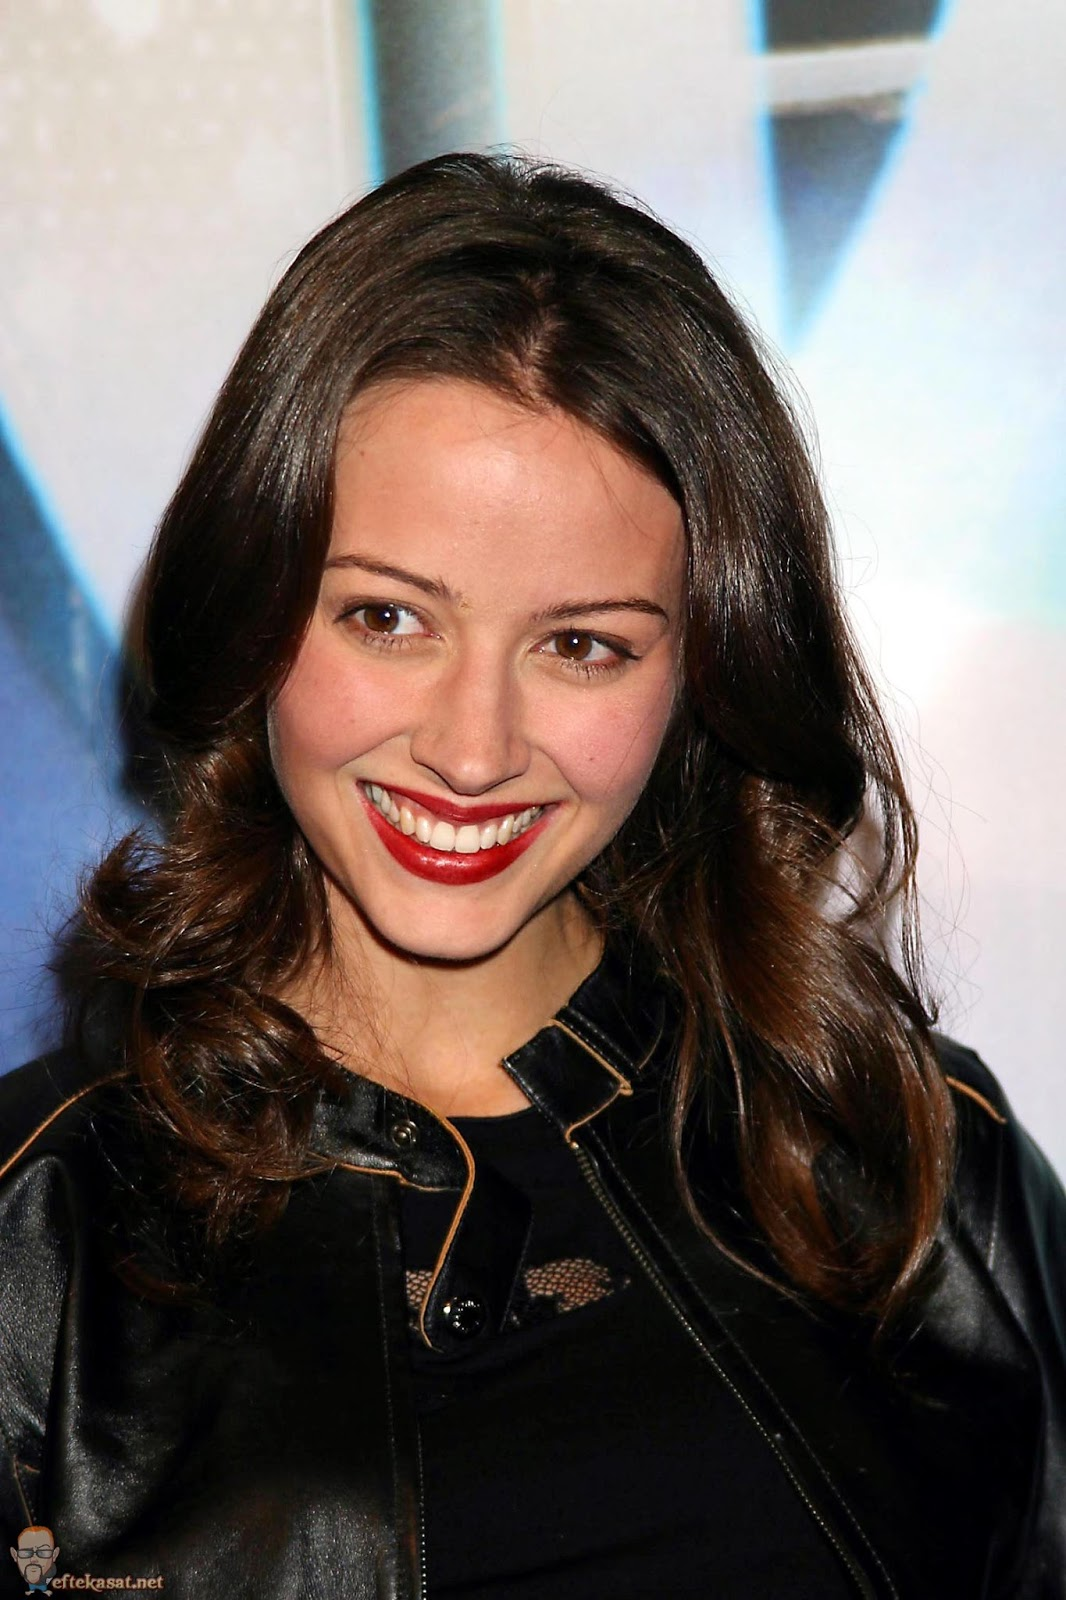 STARS WALLPAPER: Amy Acker HD Wallpapers Free Download